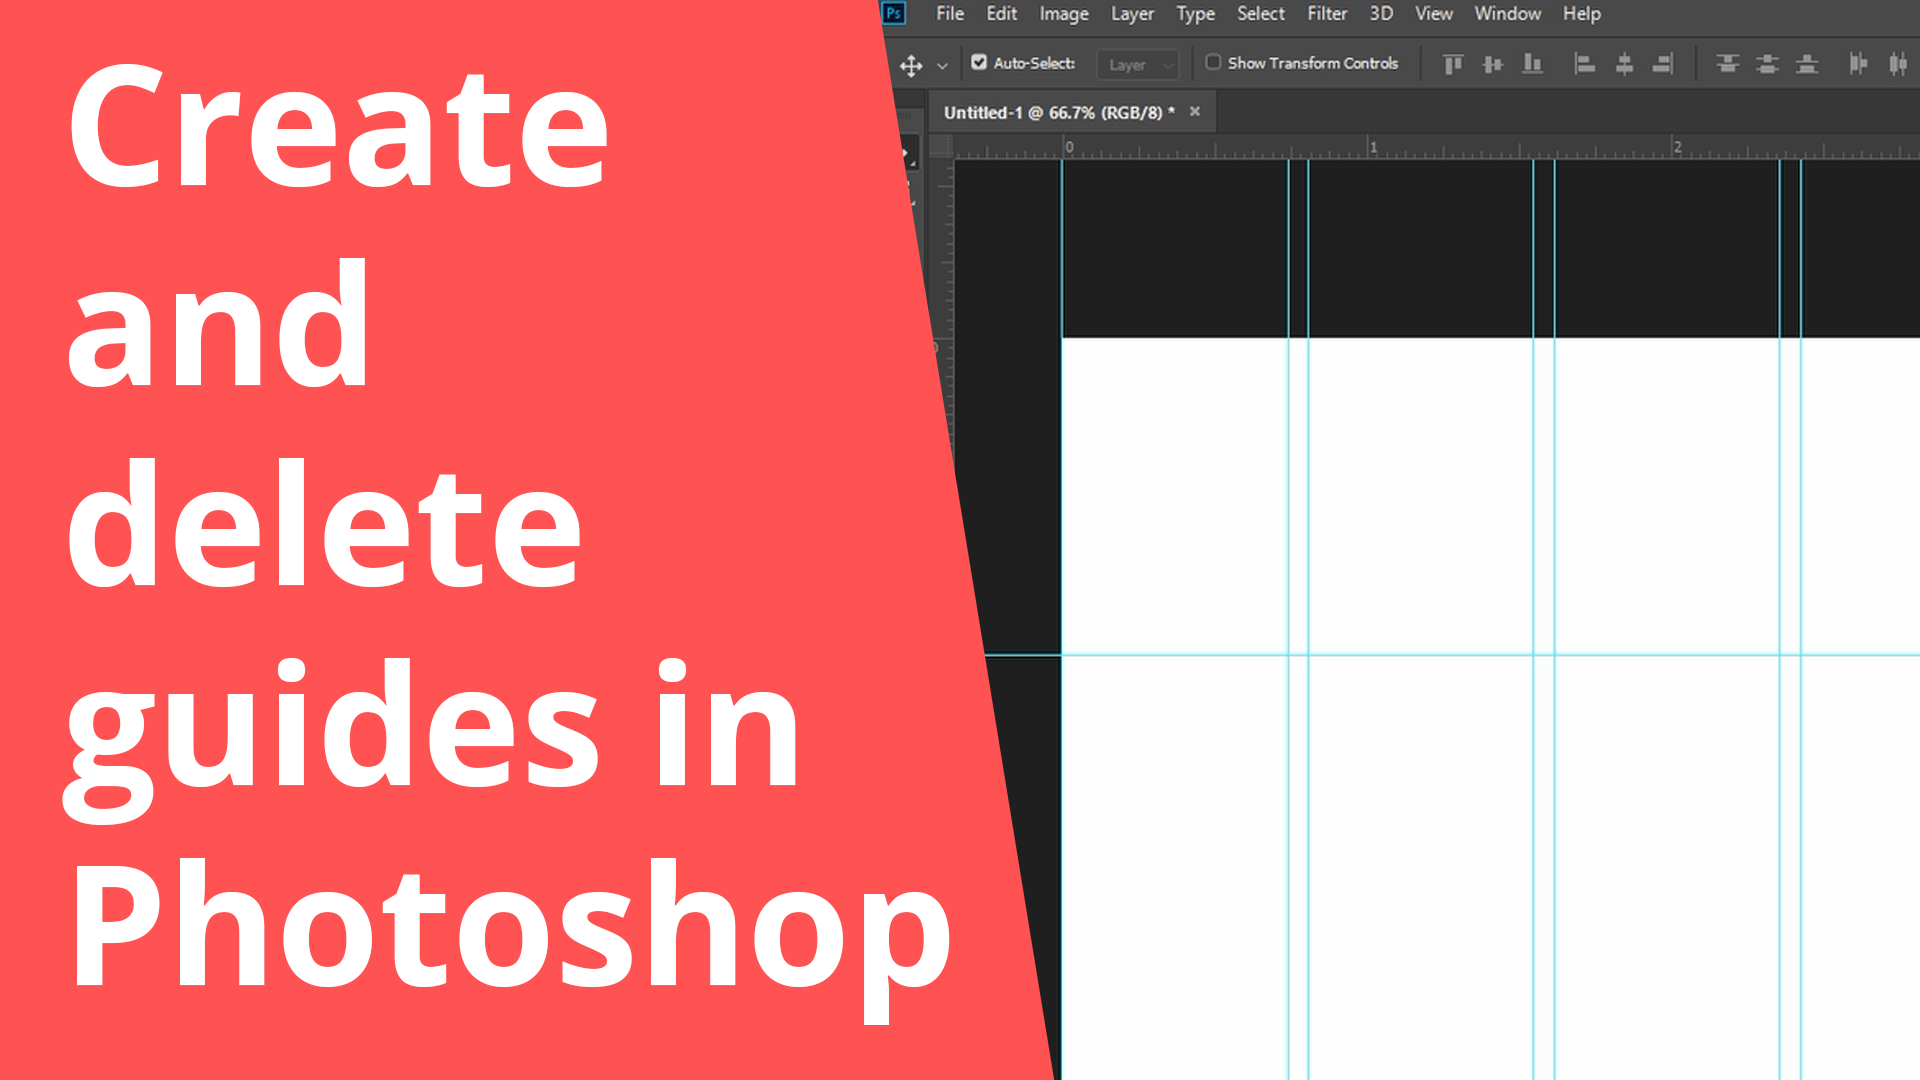 Create and delete guides in Photoshop